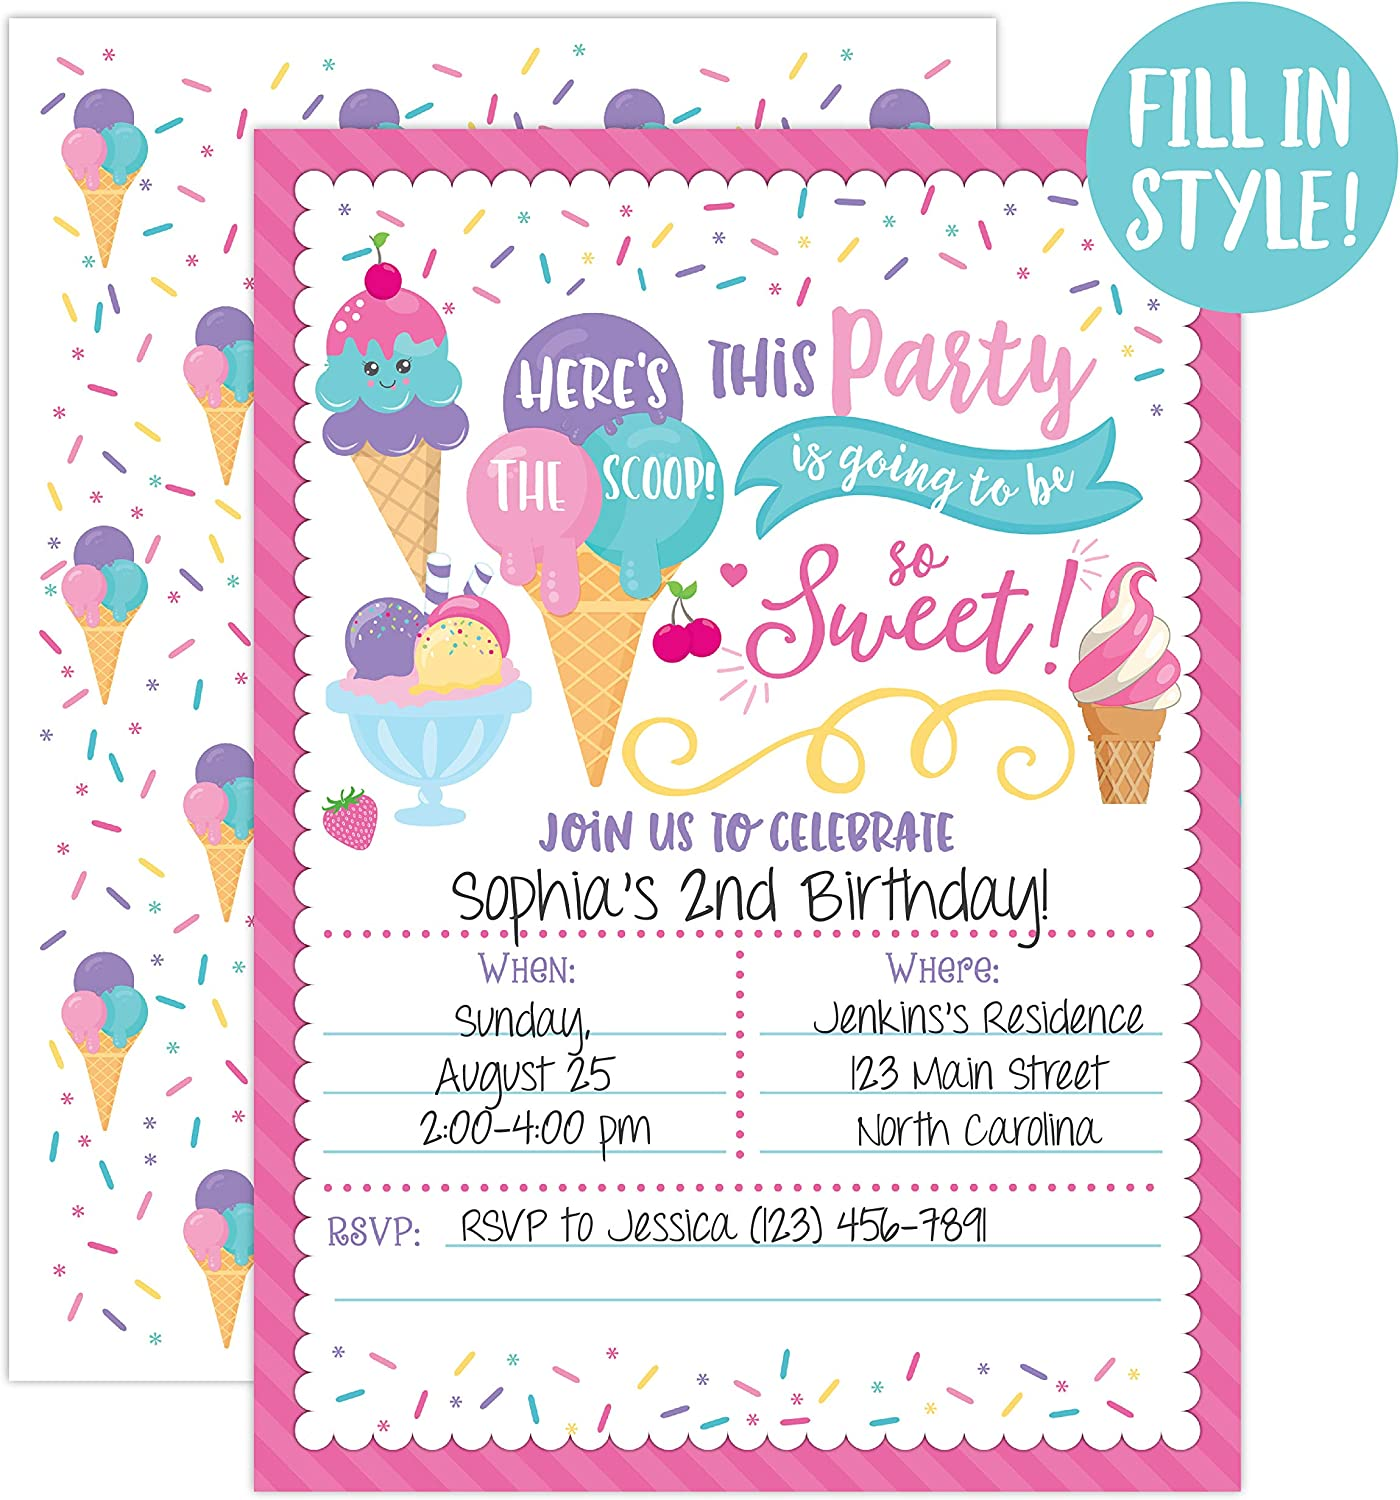 How To Invite Your Account To Your Party Fortnite Amazon Com Ice Cream Birthday Party Invitations Girl Birthday Invitations Here S The Scoop Ice Cream Social 20 Fill In Invitations And Envelopes Health Personal Care